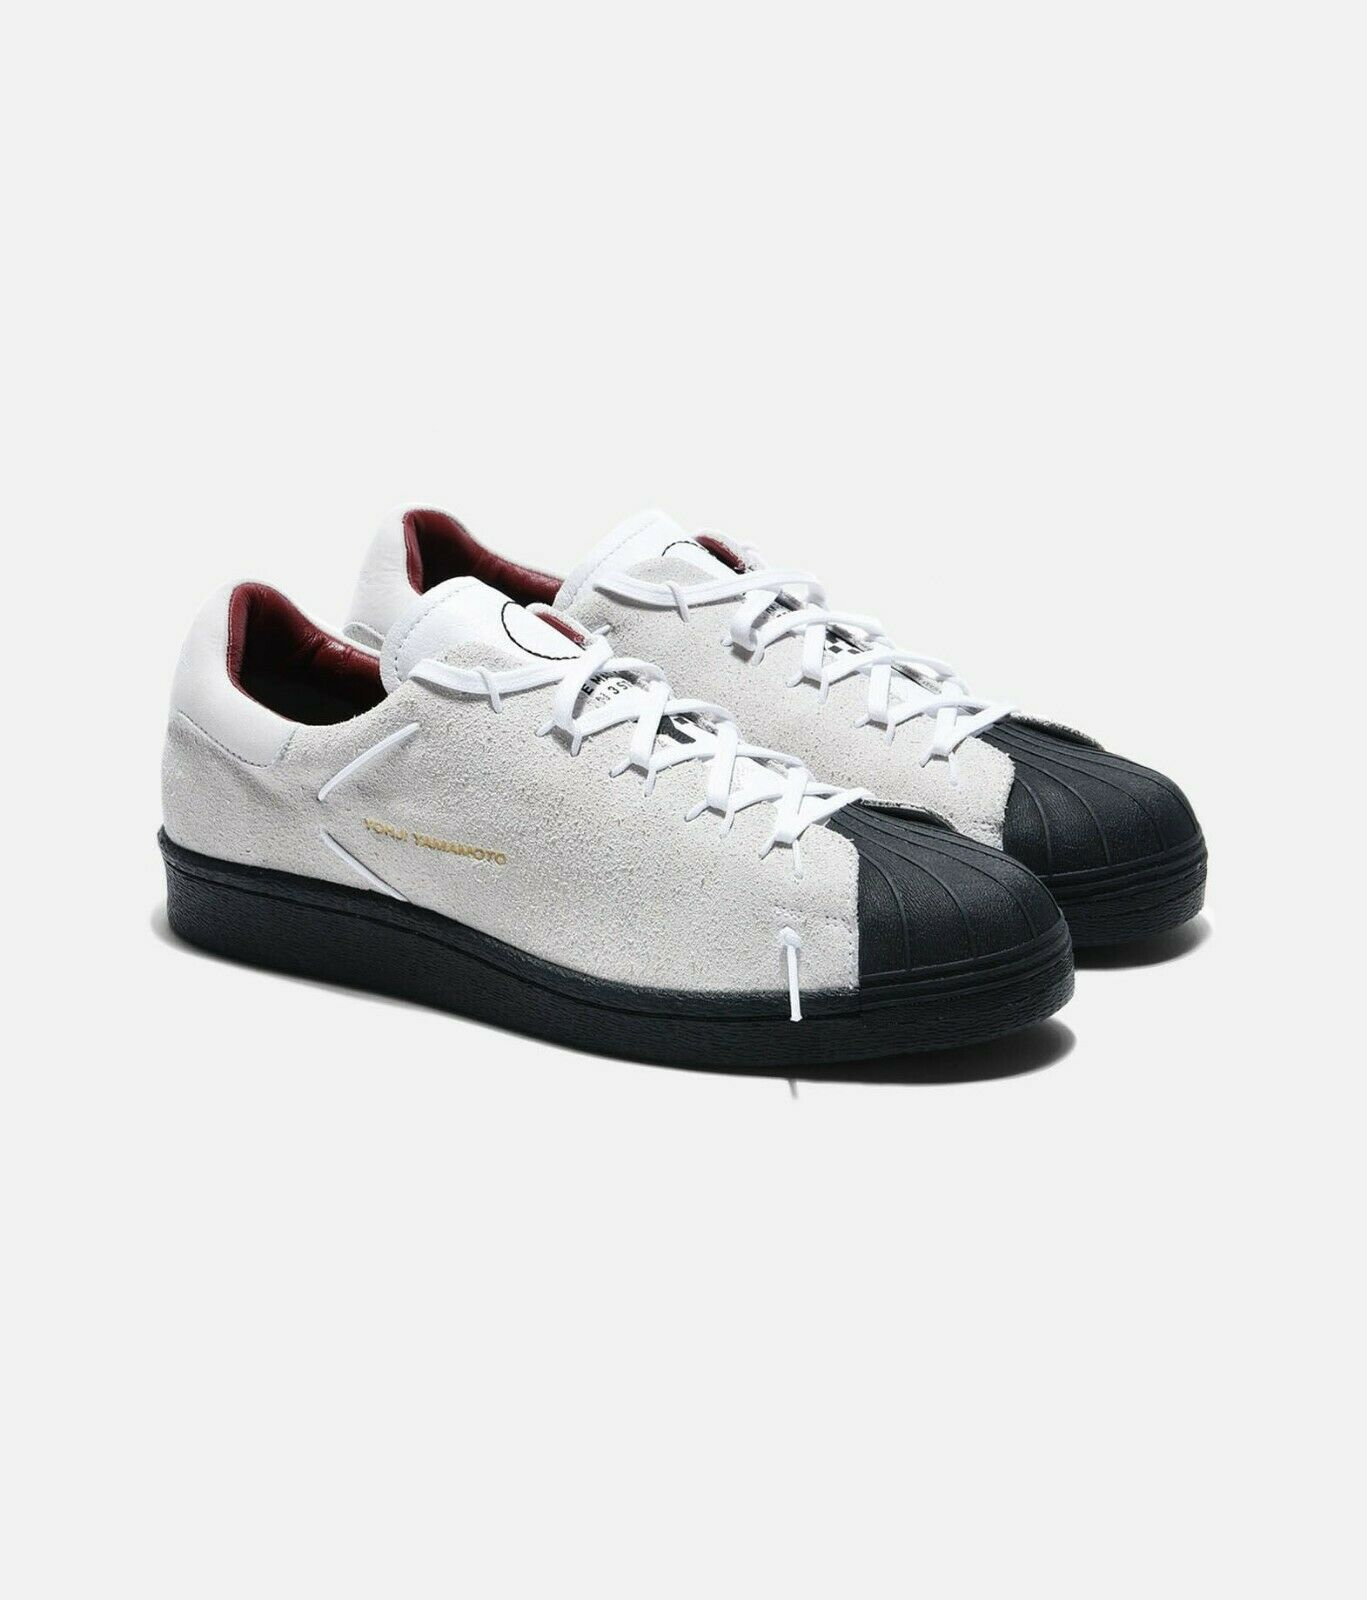 Y-3 Super Knot shoes Sneakers CG6081 White Black Beige US US US 9.5 b5fcdf